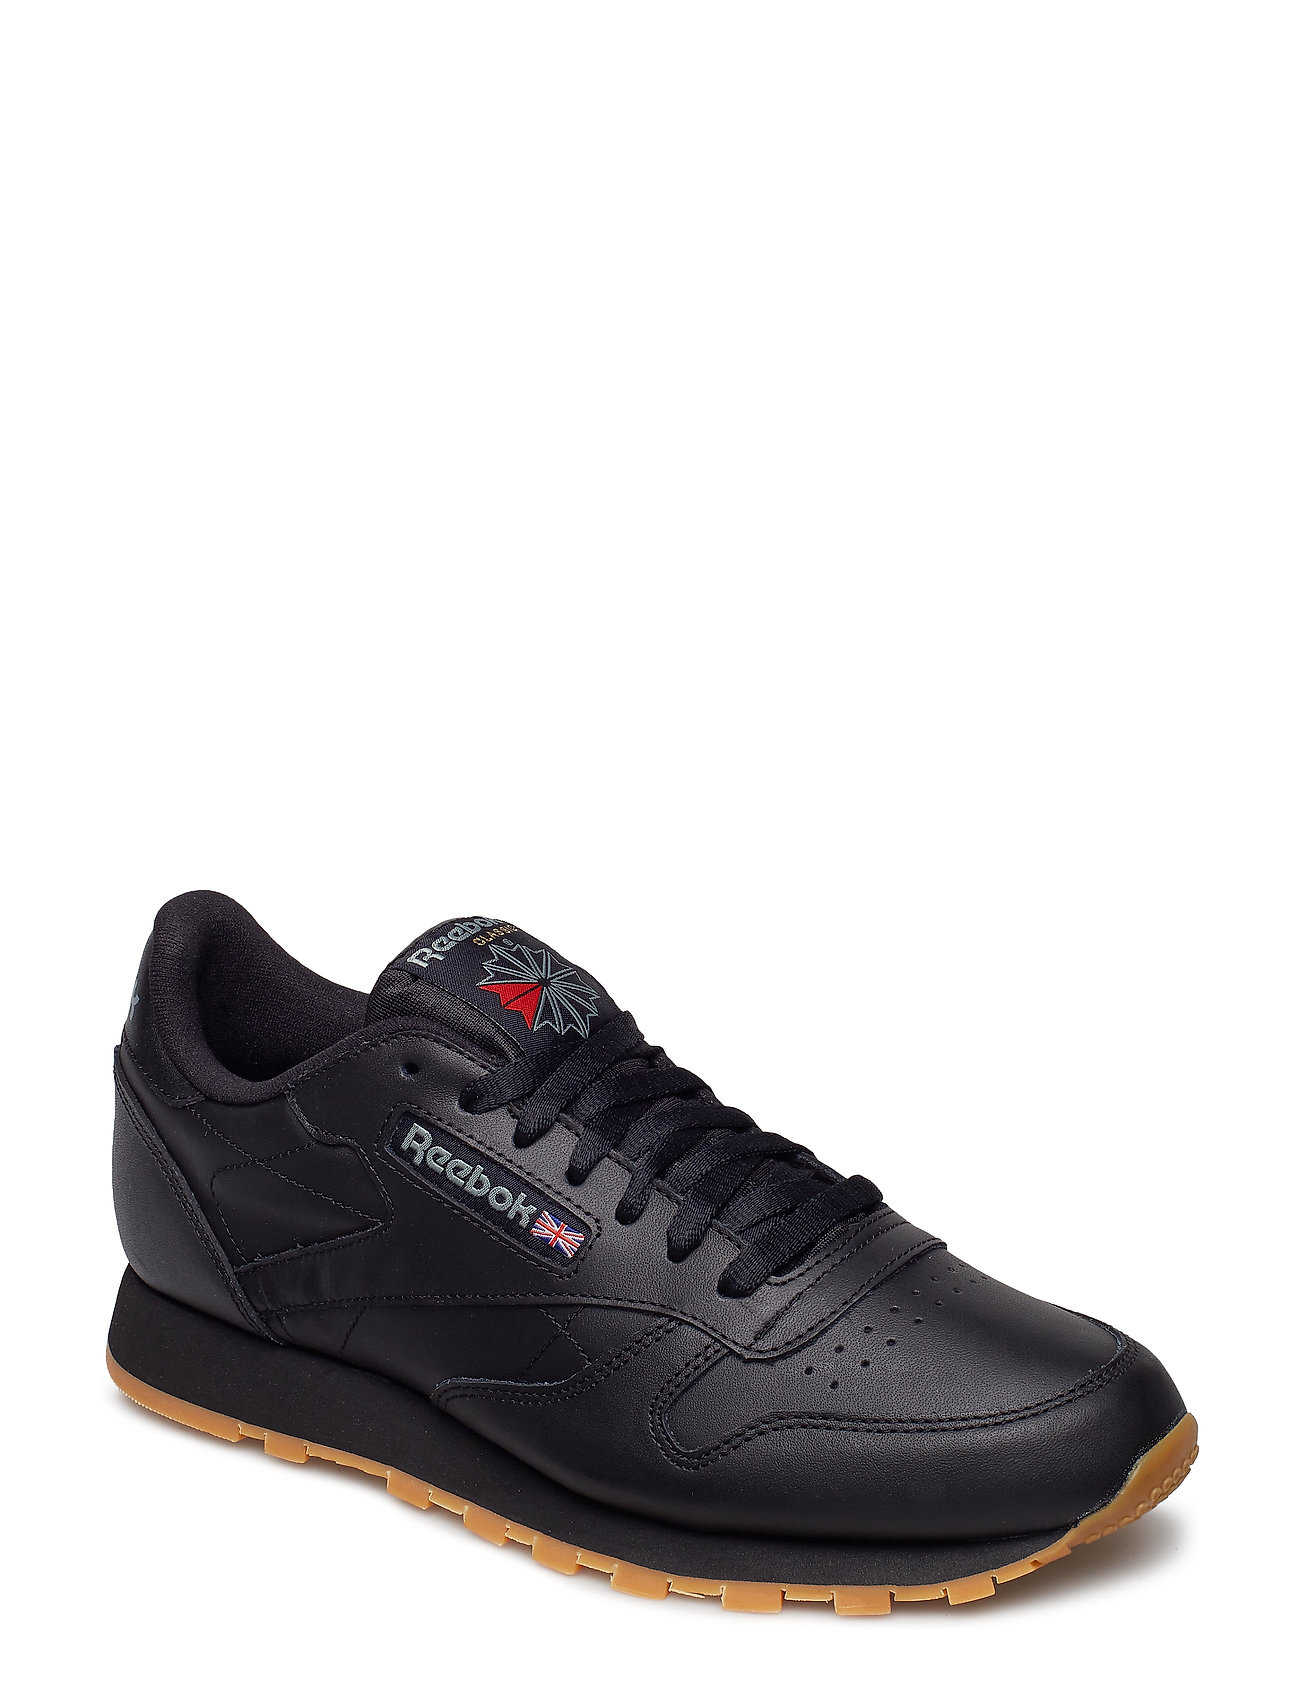 Image of Classic Leather Low-top Sneakers Sort Reebok Classics (3197996279)